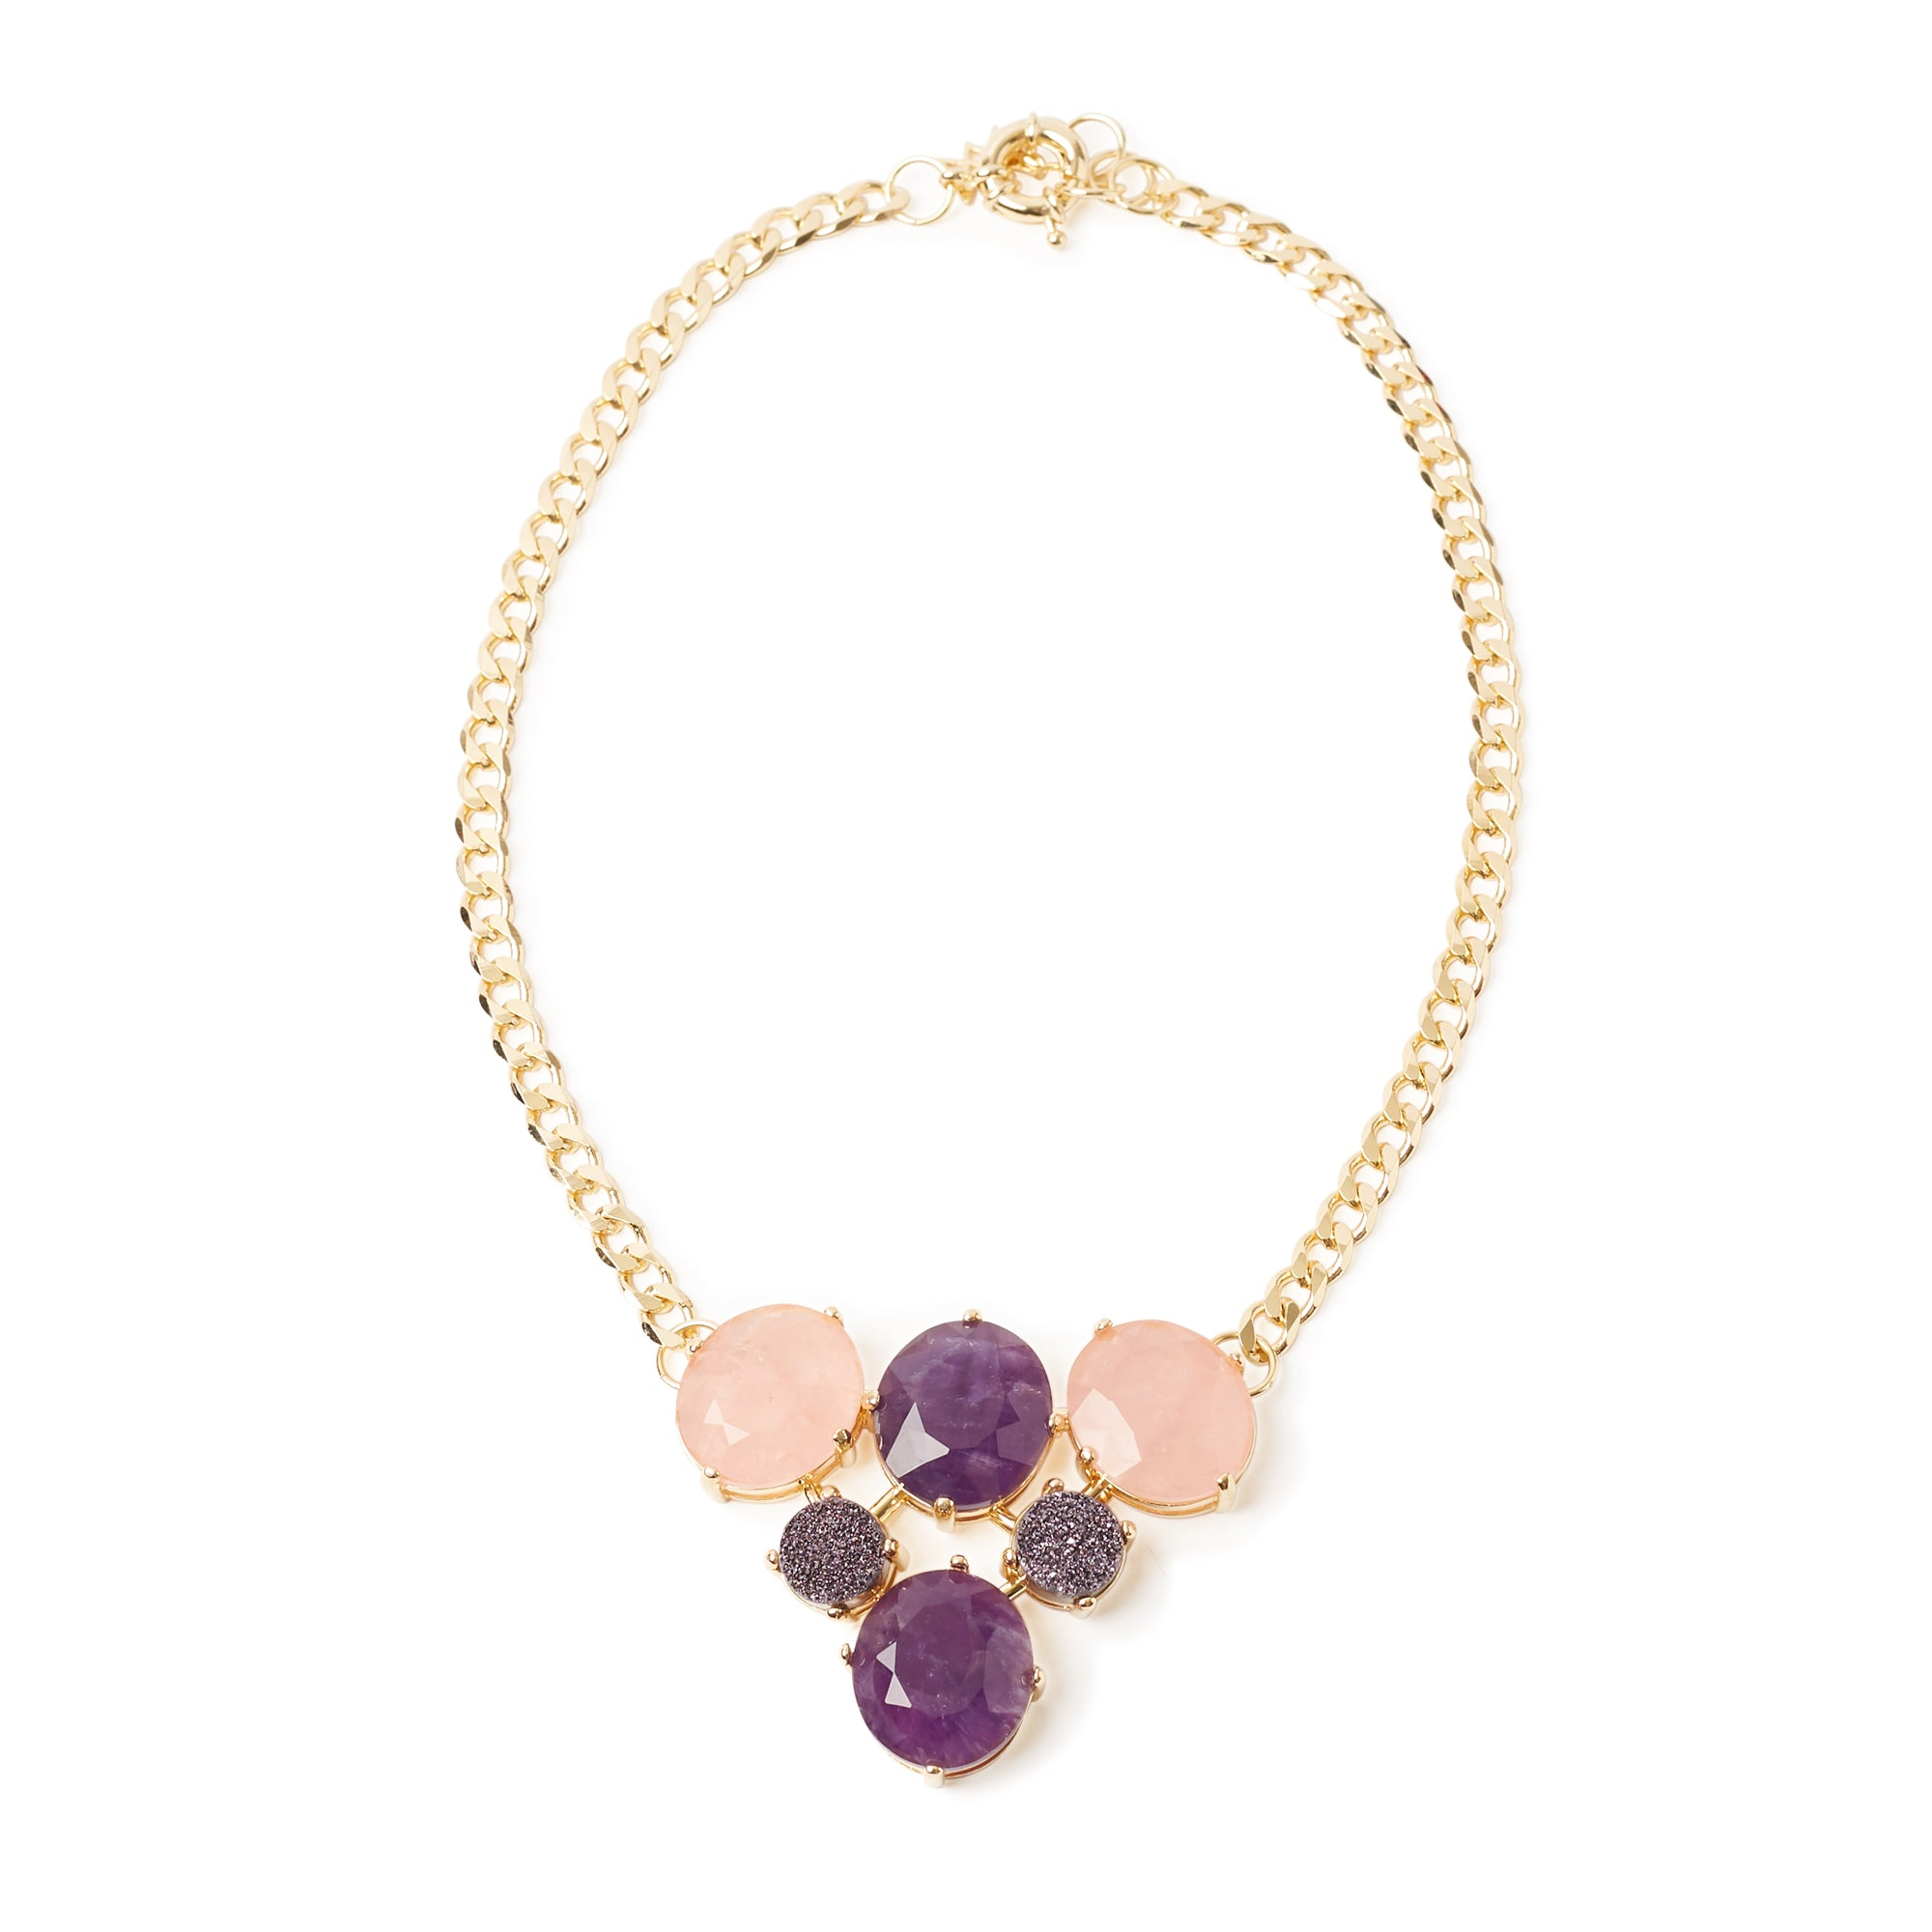 Tramonto Necklace Amethyst Pink Quartz Colored Druse